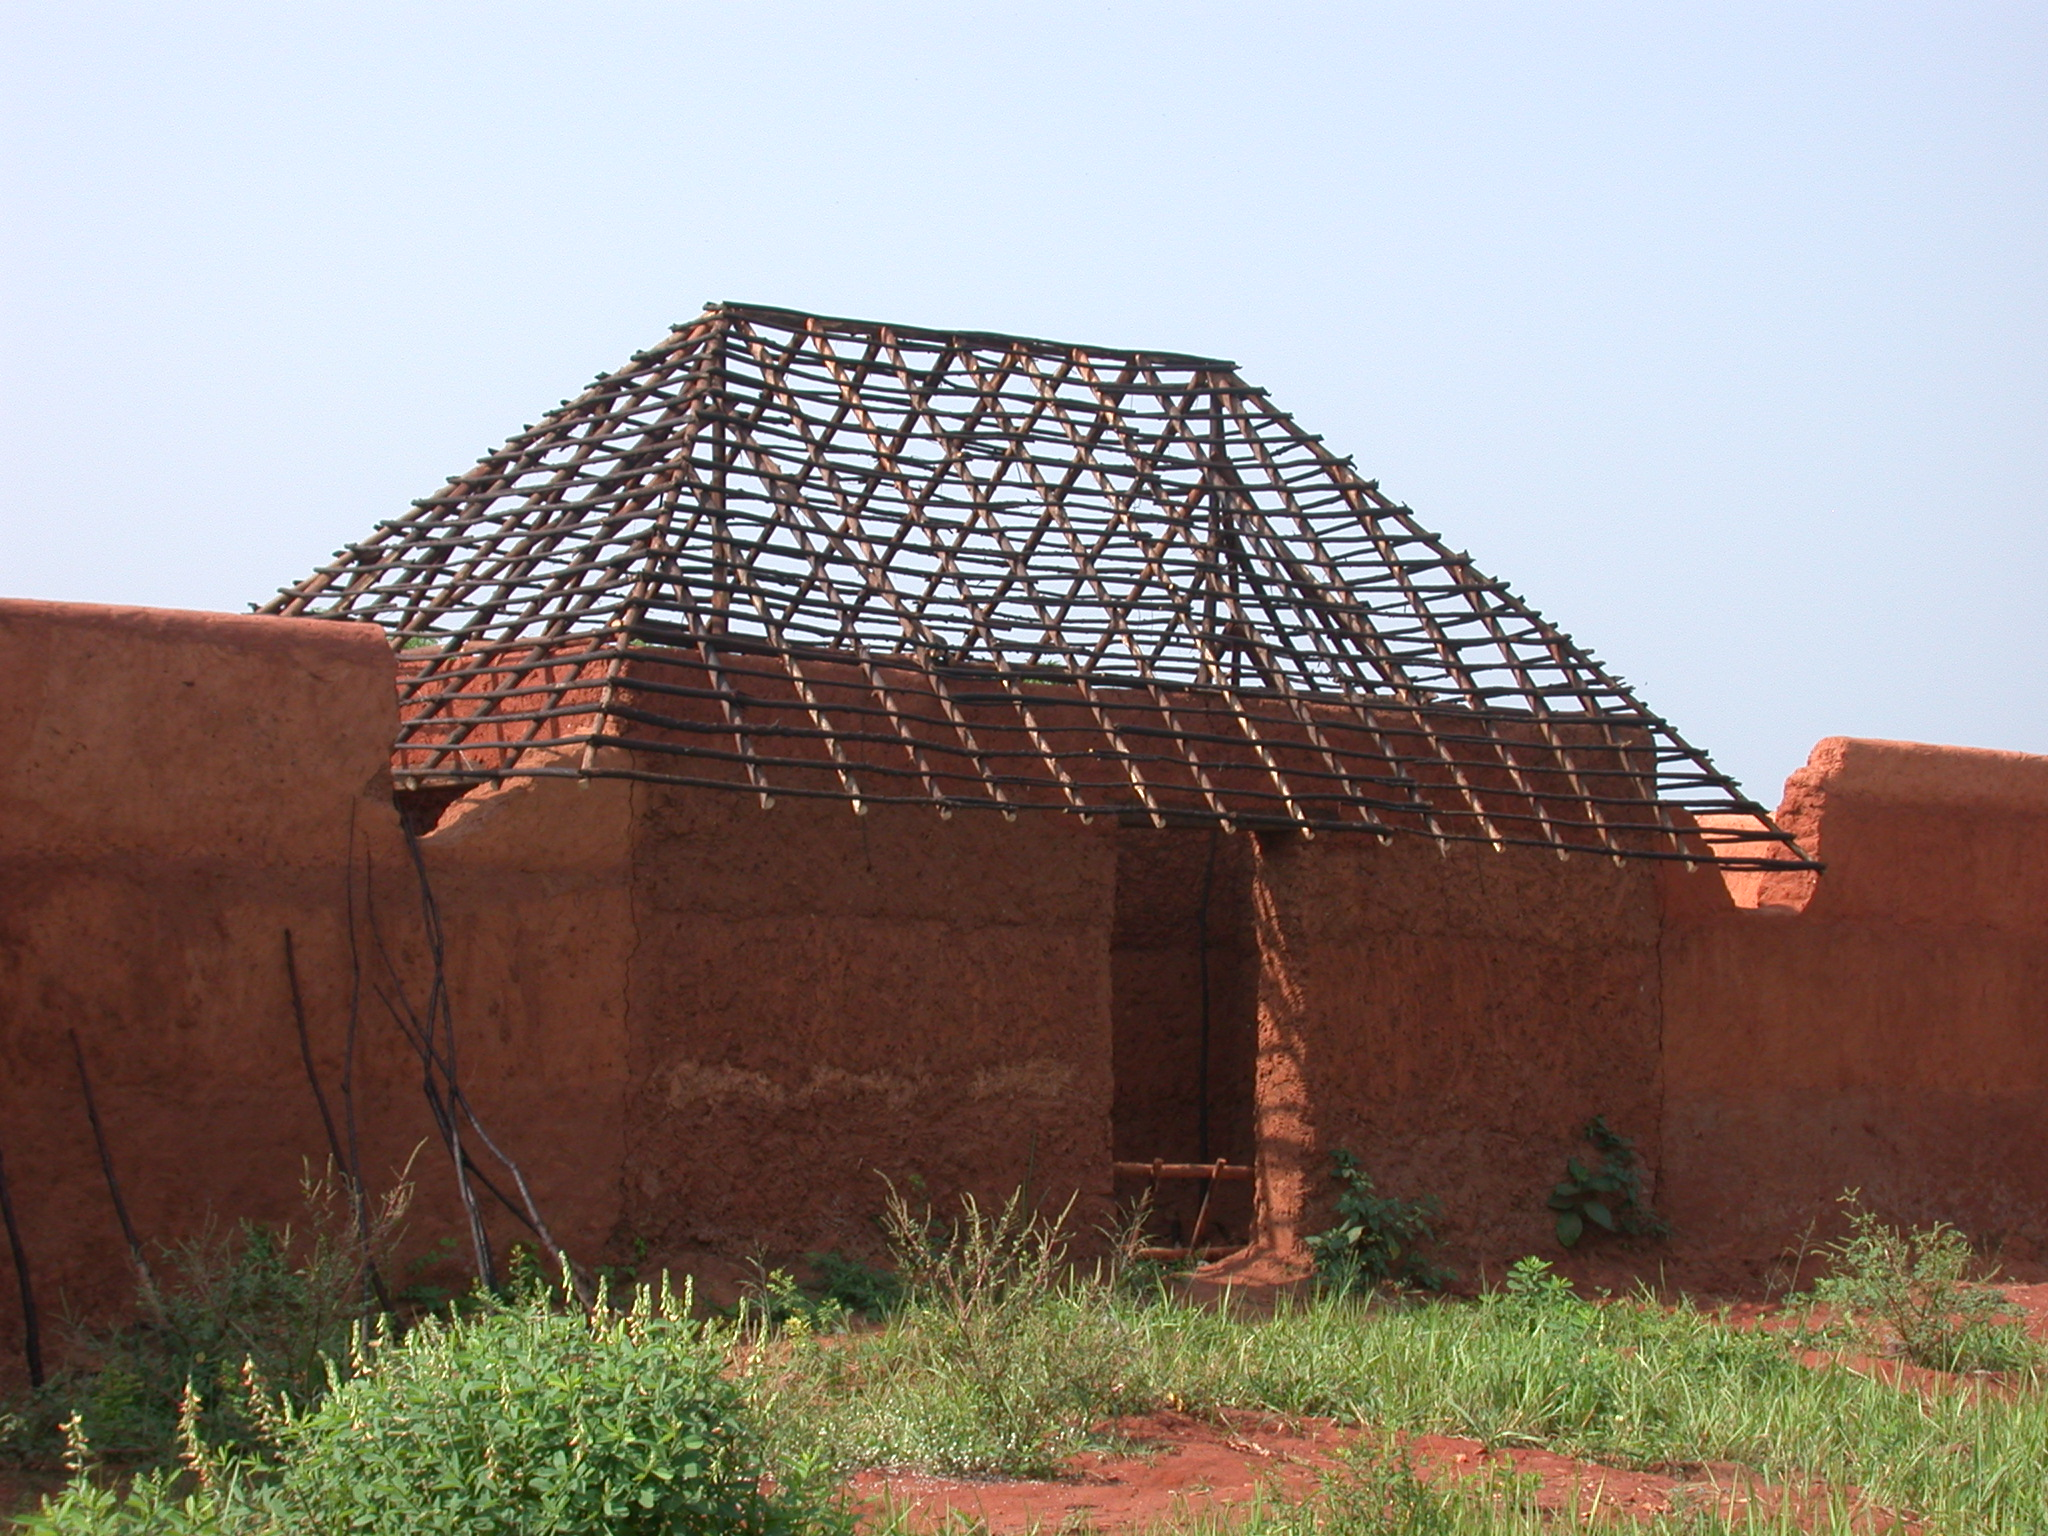 Reconstruction of Palace of King Houegbadja, Abomey, Benin